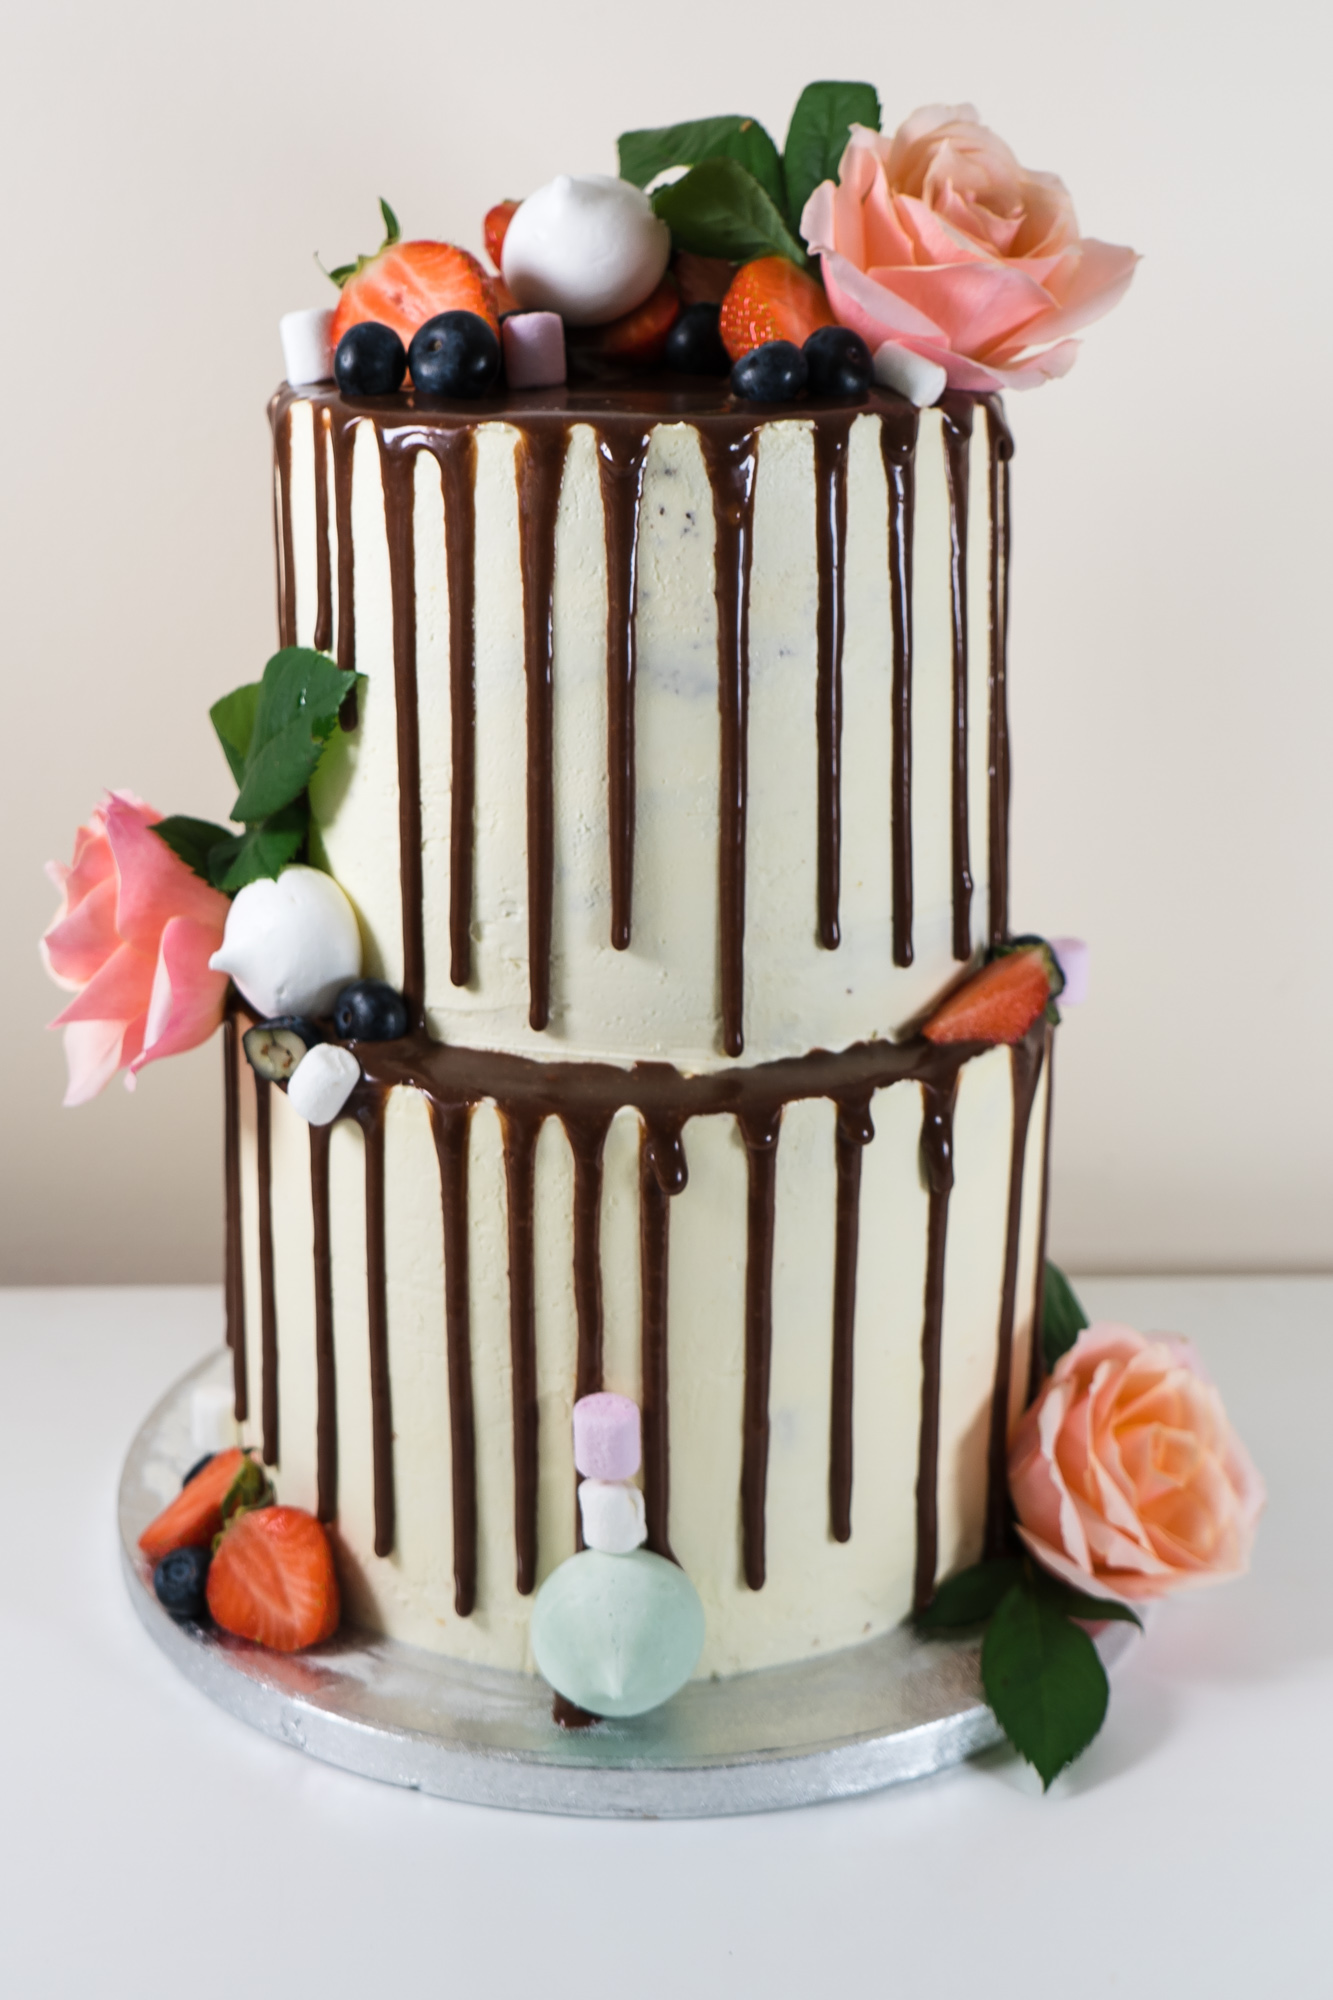 Strawberries and fresh fruit drip cake